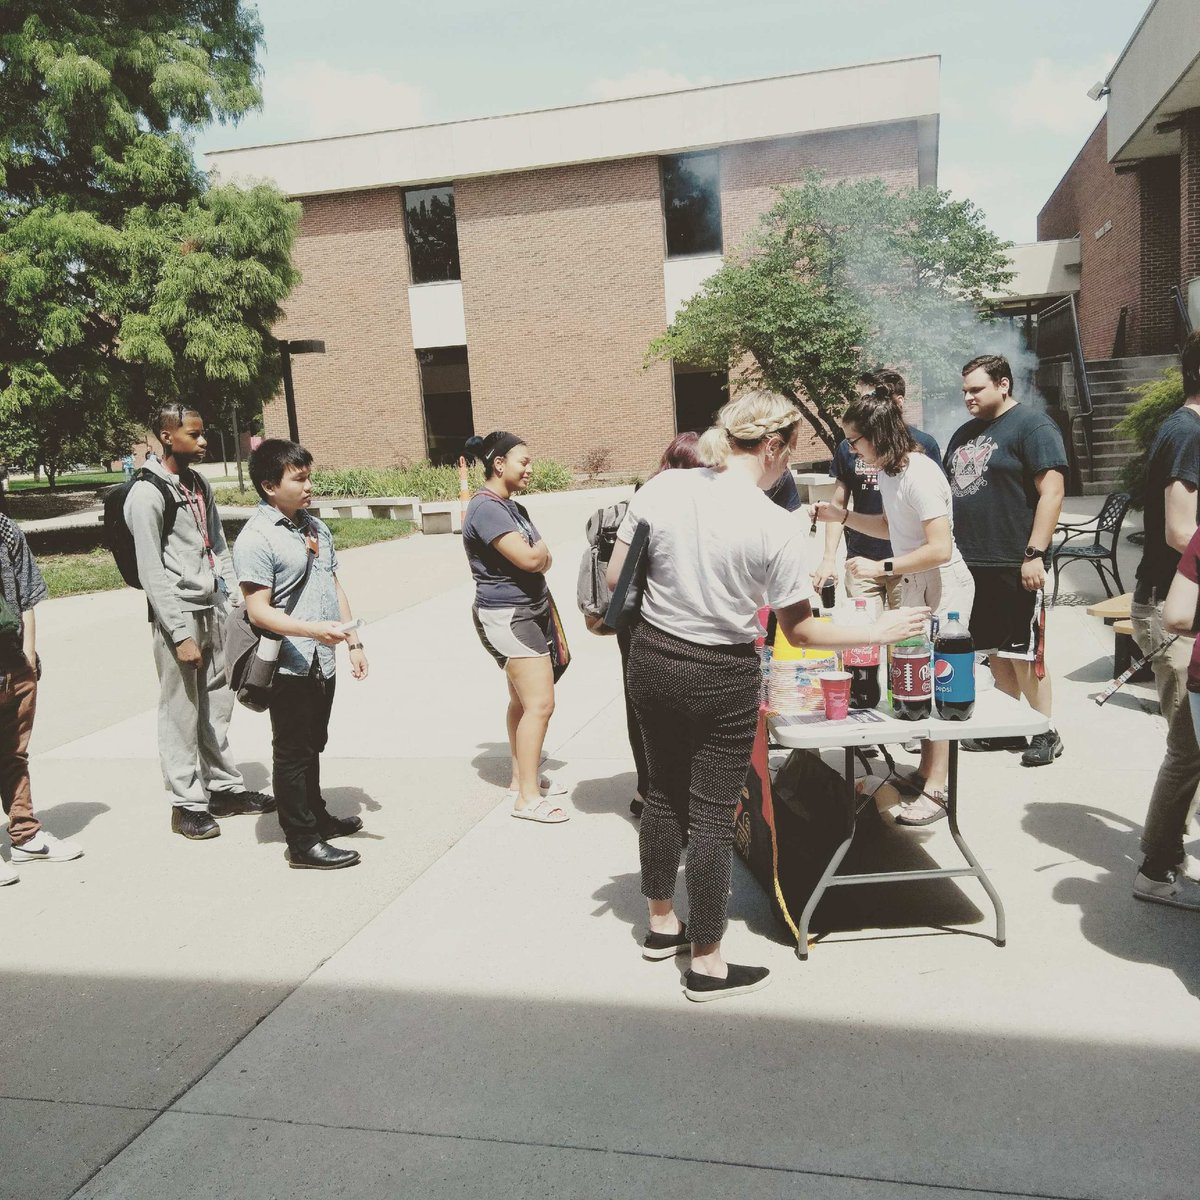 Had a great time serving hot dogs and burgers after seminar today! Thanks to everyone who came by and to all the brothers who helped out! @UMSL_Music<br>http://pic.twitter.com/jyZqL02DLK